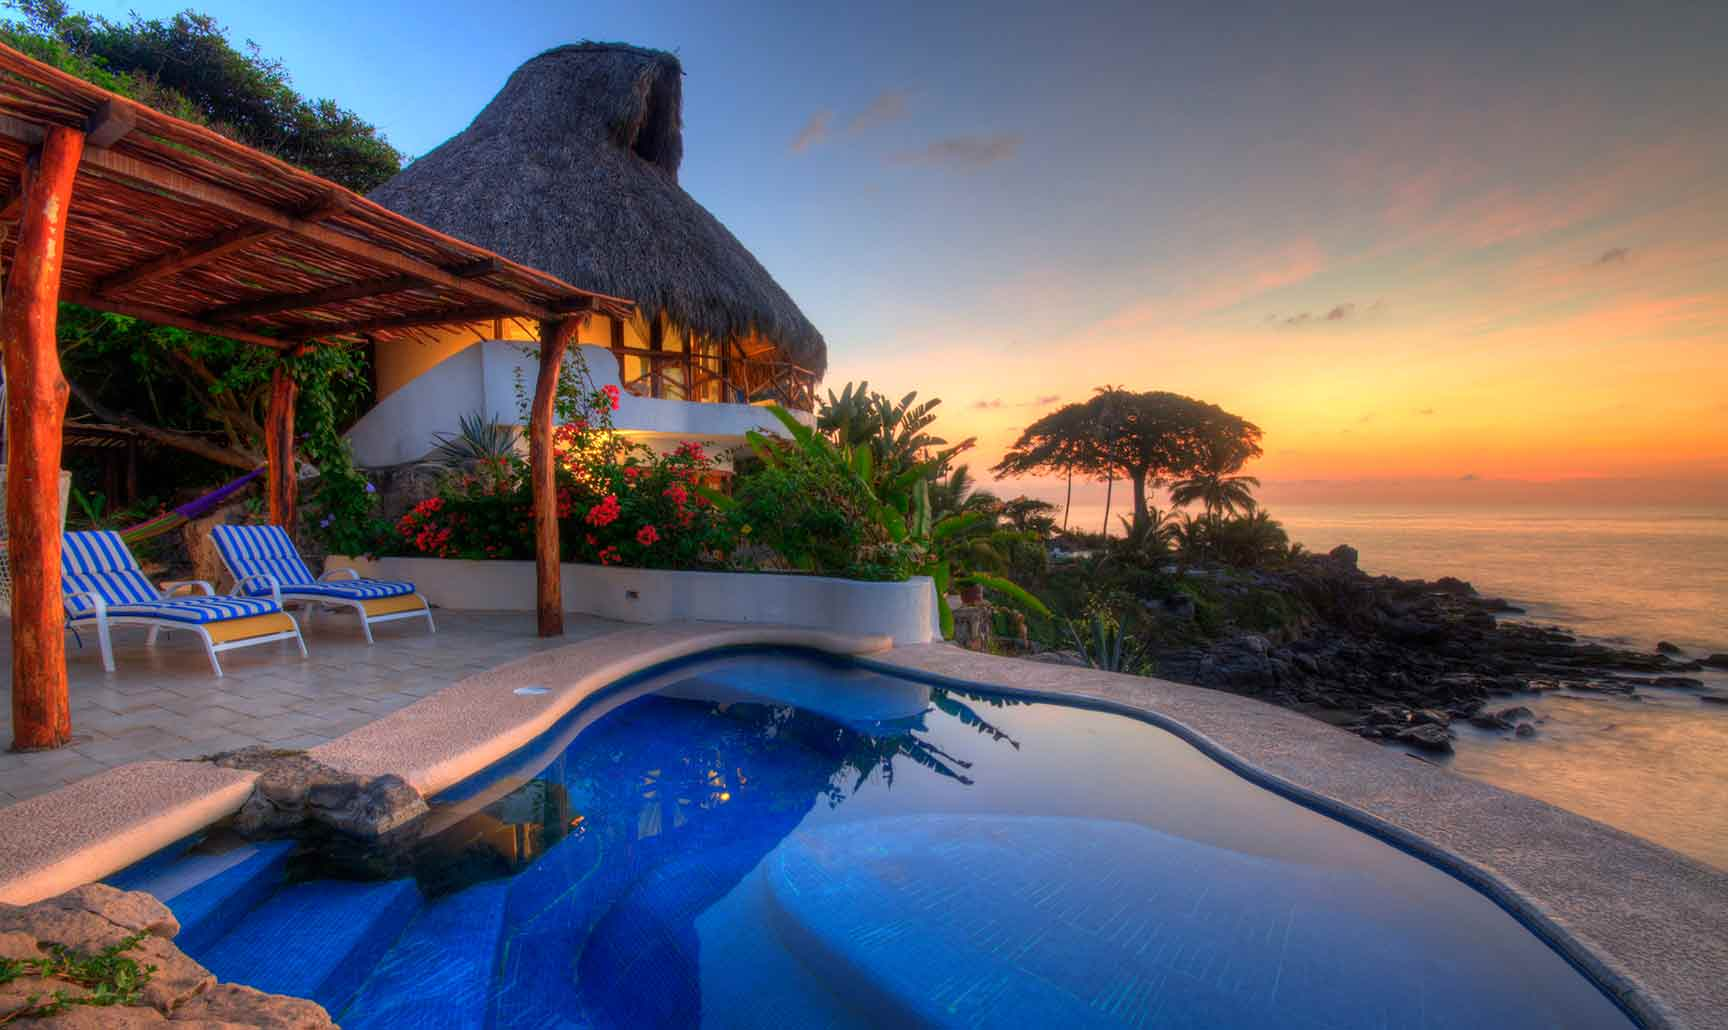 Oceanfront villa with pool by night